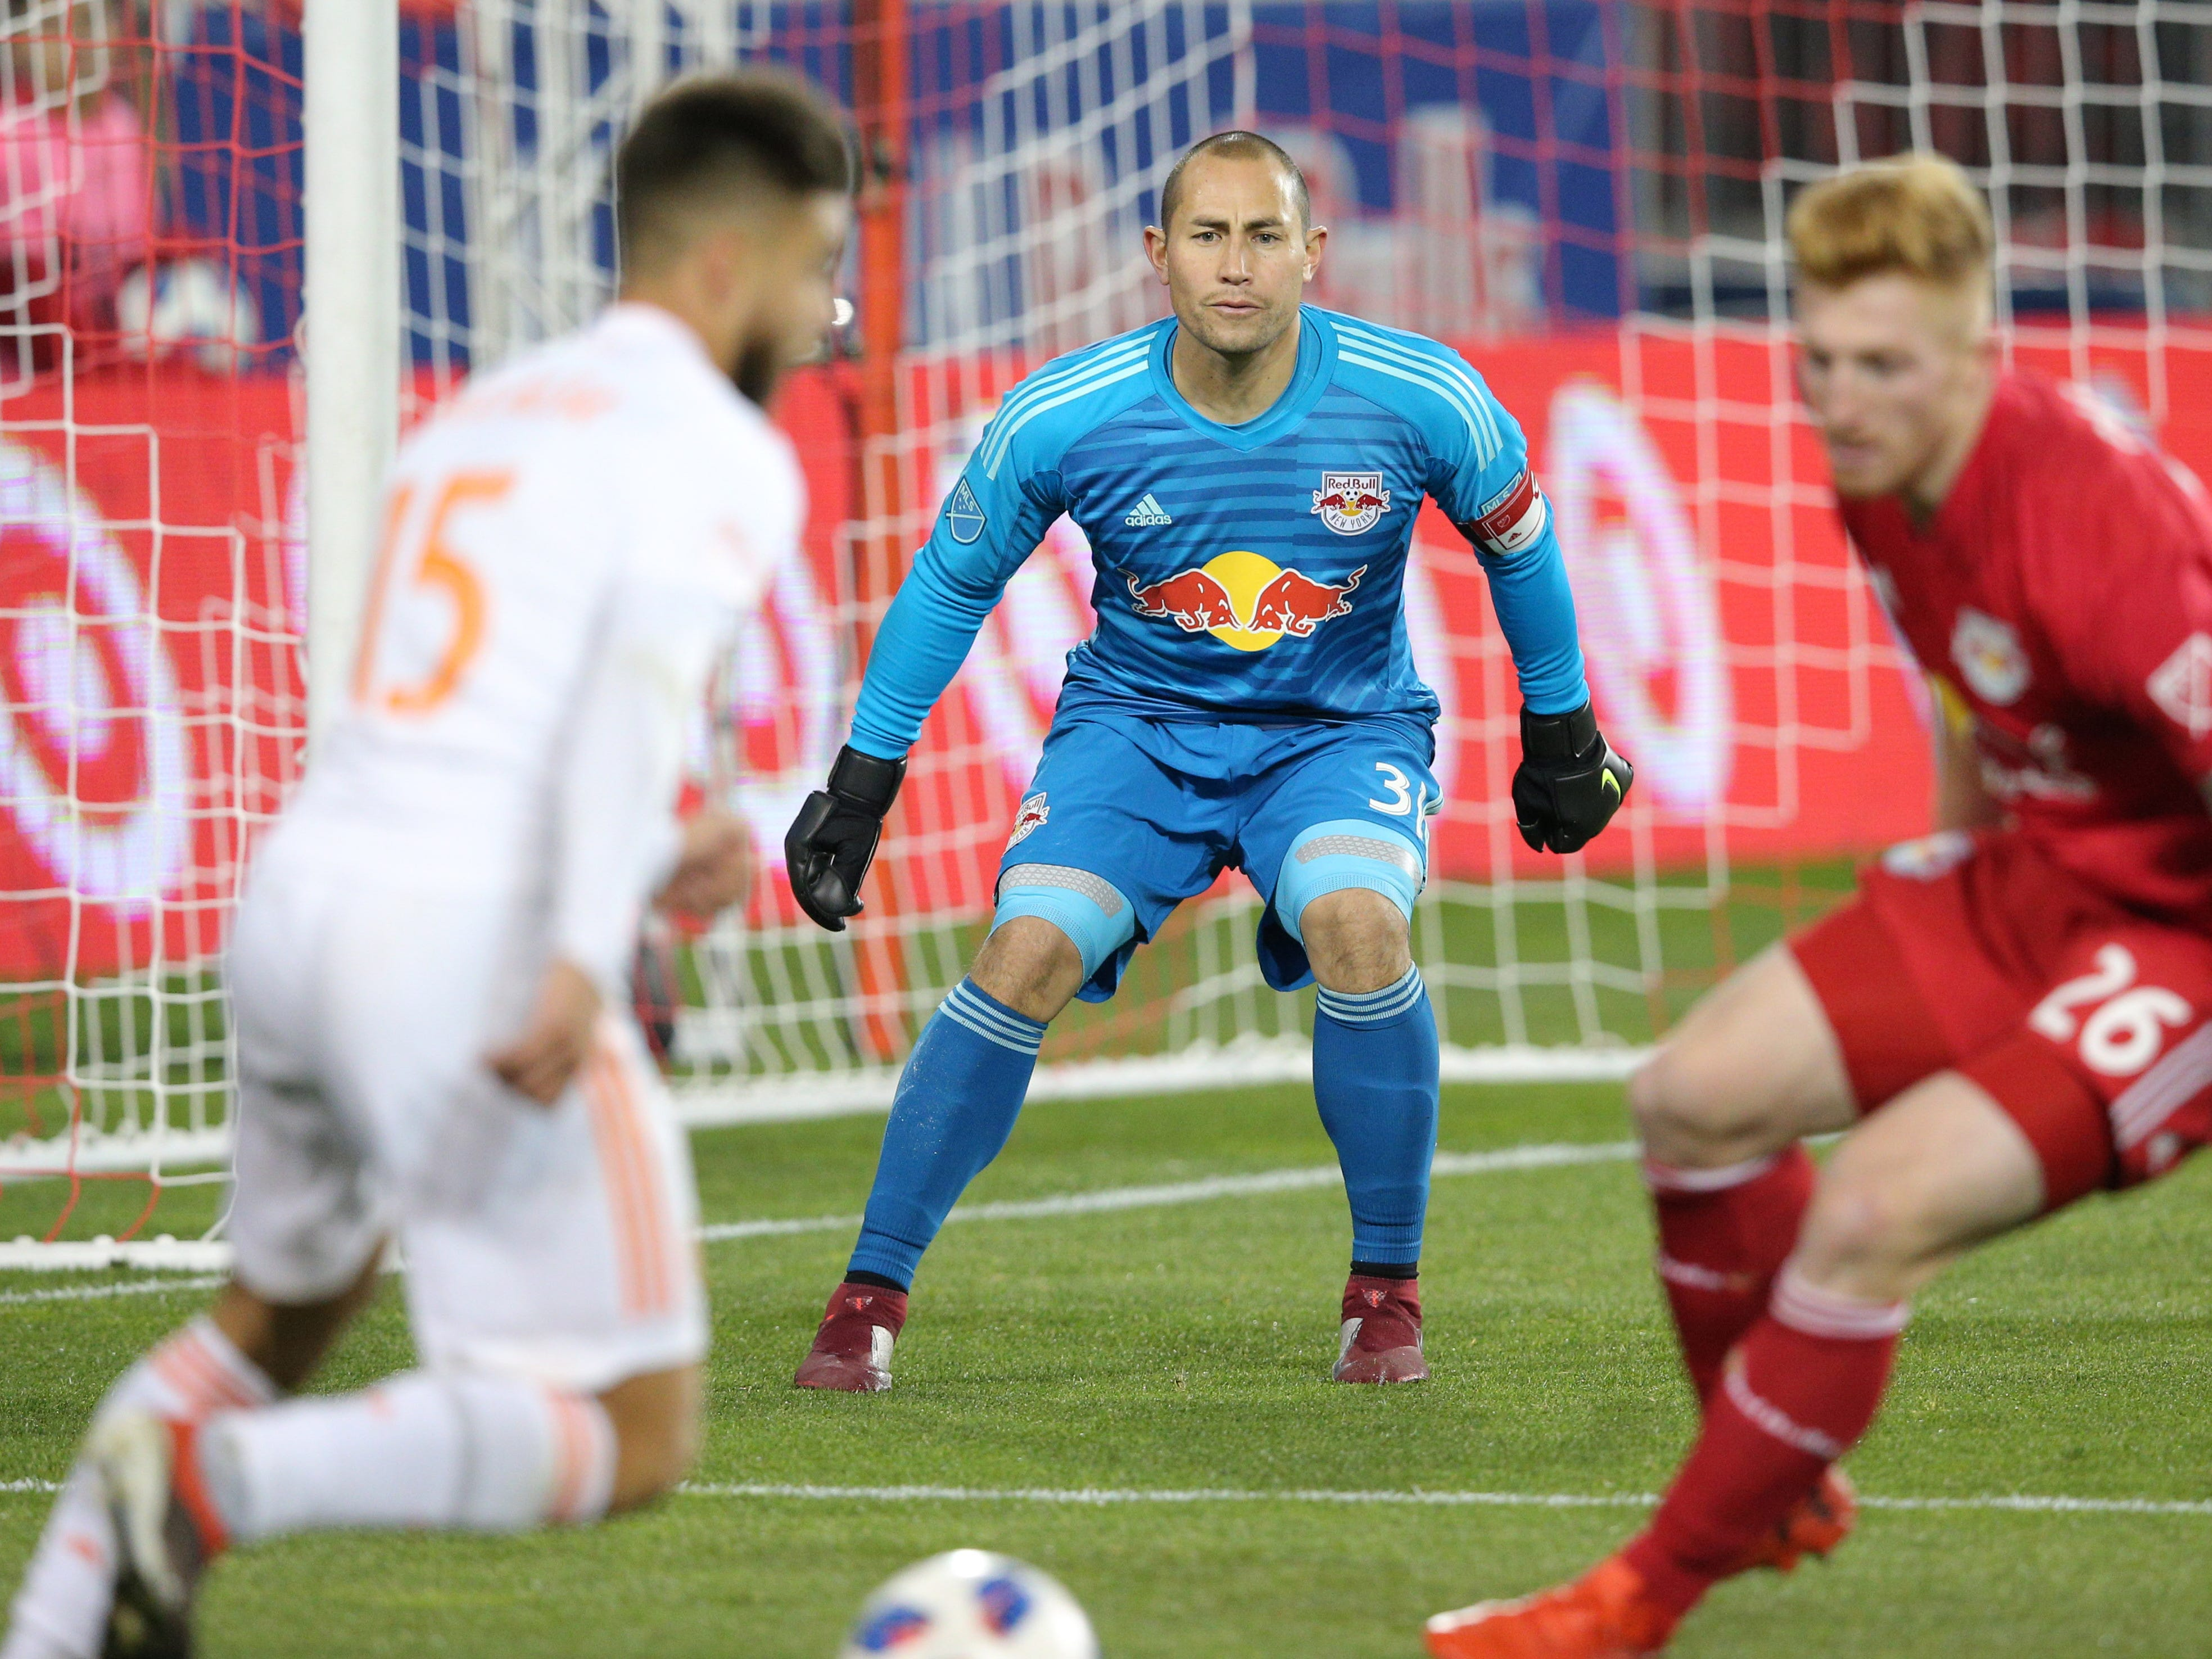 New York Red Bulls goalkeeper Luis Robles defends the goal against Atlanta United forward Hector Villalba (15) during the second half of the second leg of the MLS Eastern Conference Championship at Red Bull Arena.